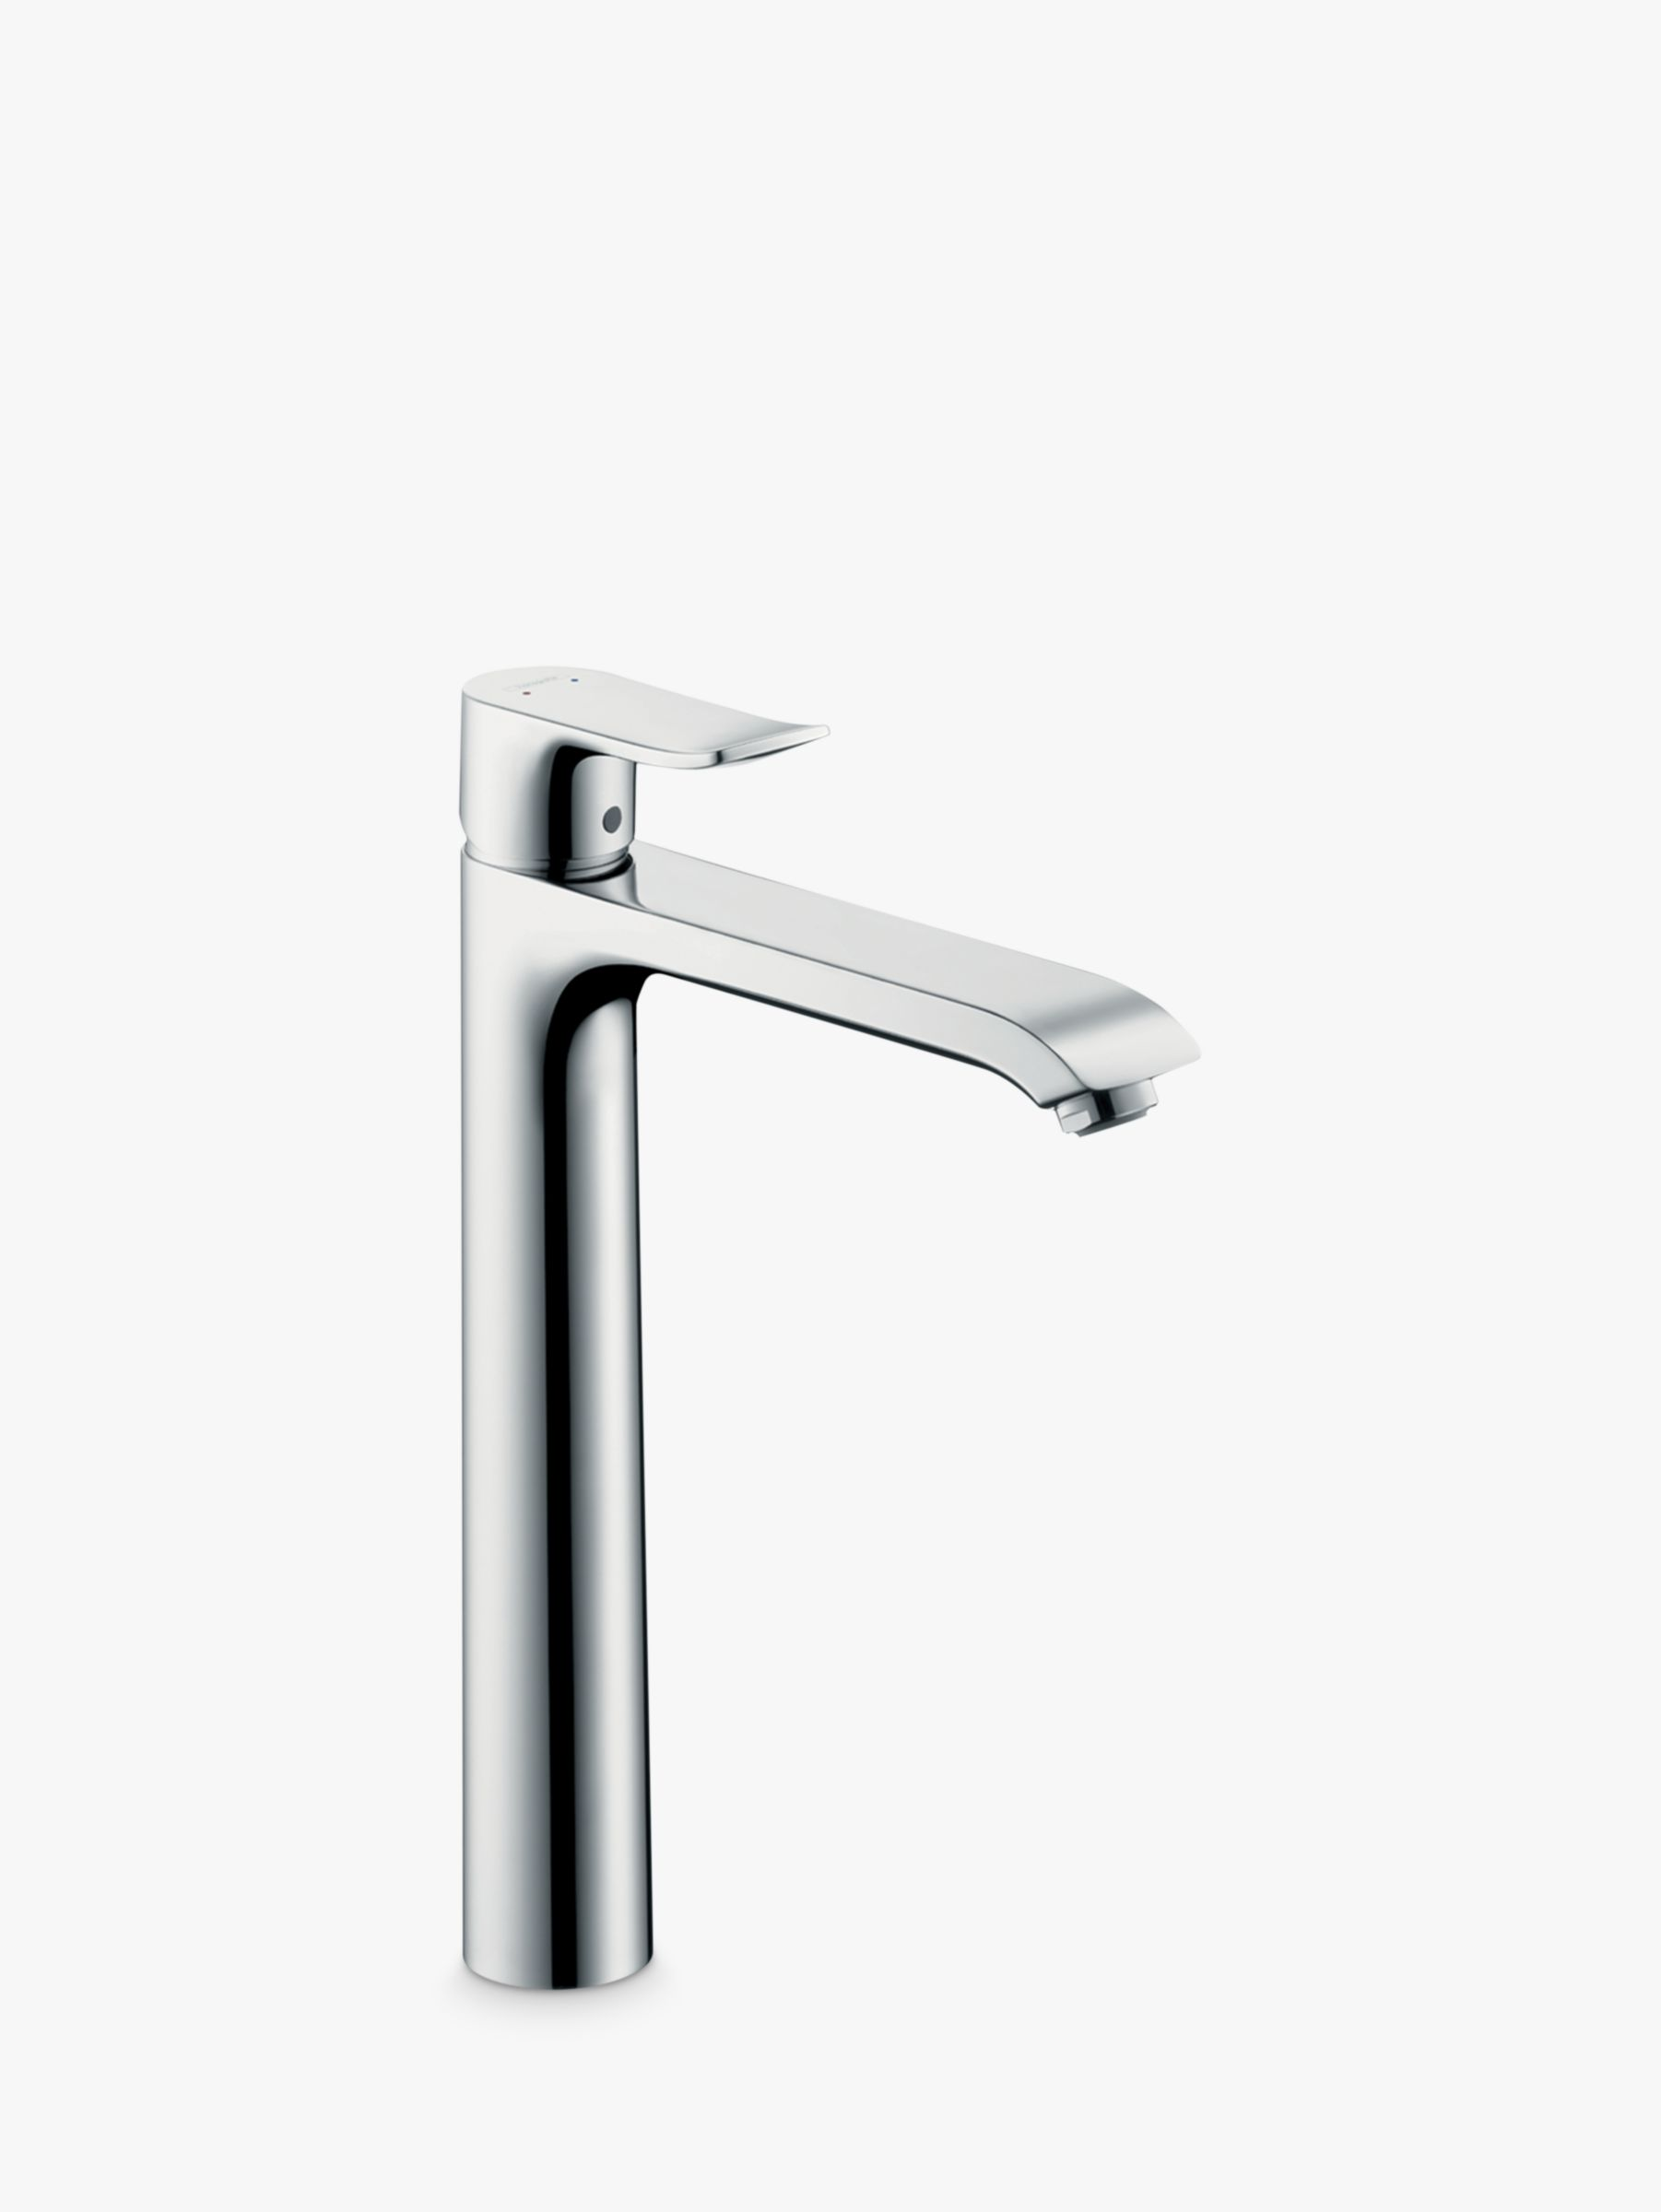 Hansgrohe Hansgrohe Metris 260 Single Lever Bathroom Basin Mixer Tap, Chrome